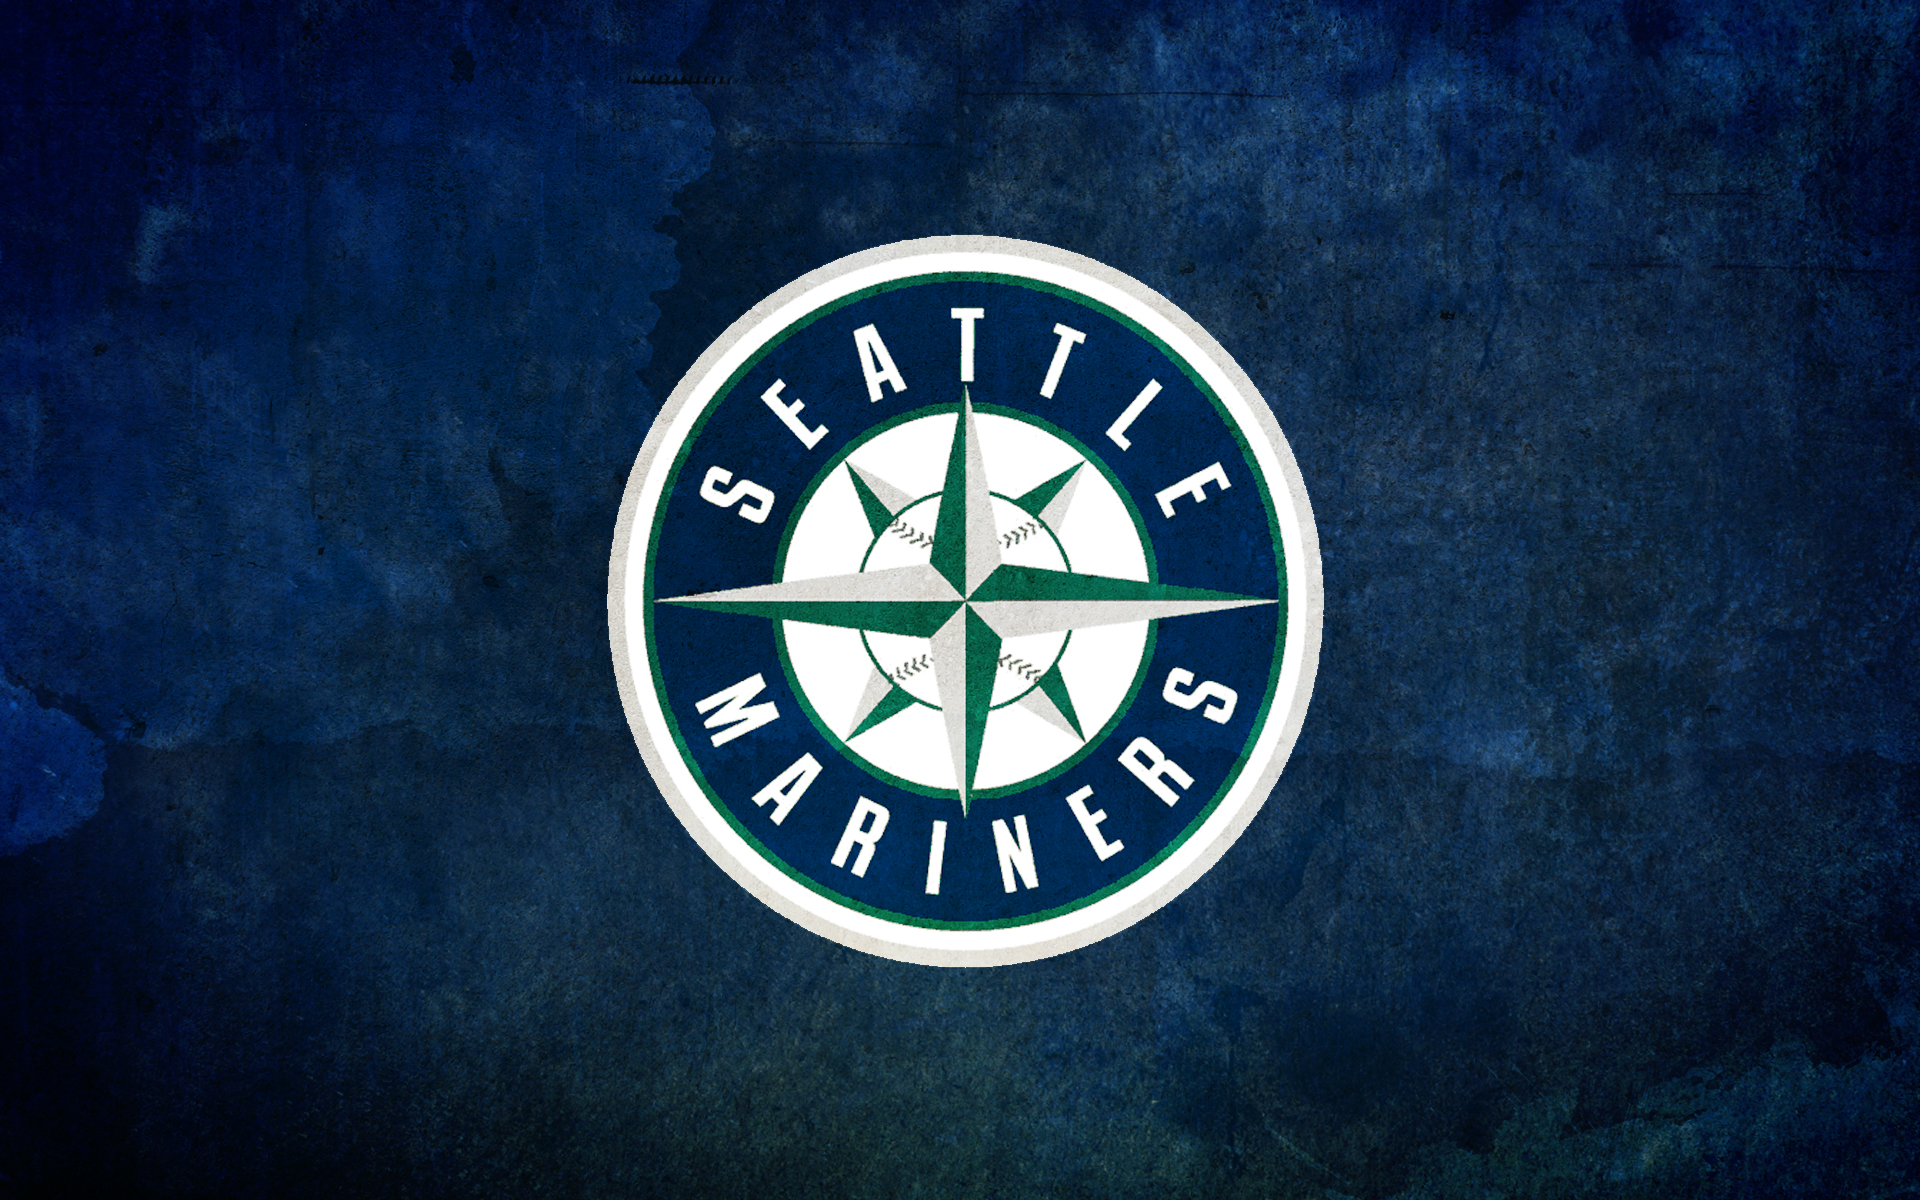 1920x1200 - Seattle Mariners Wallpapers 6